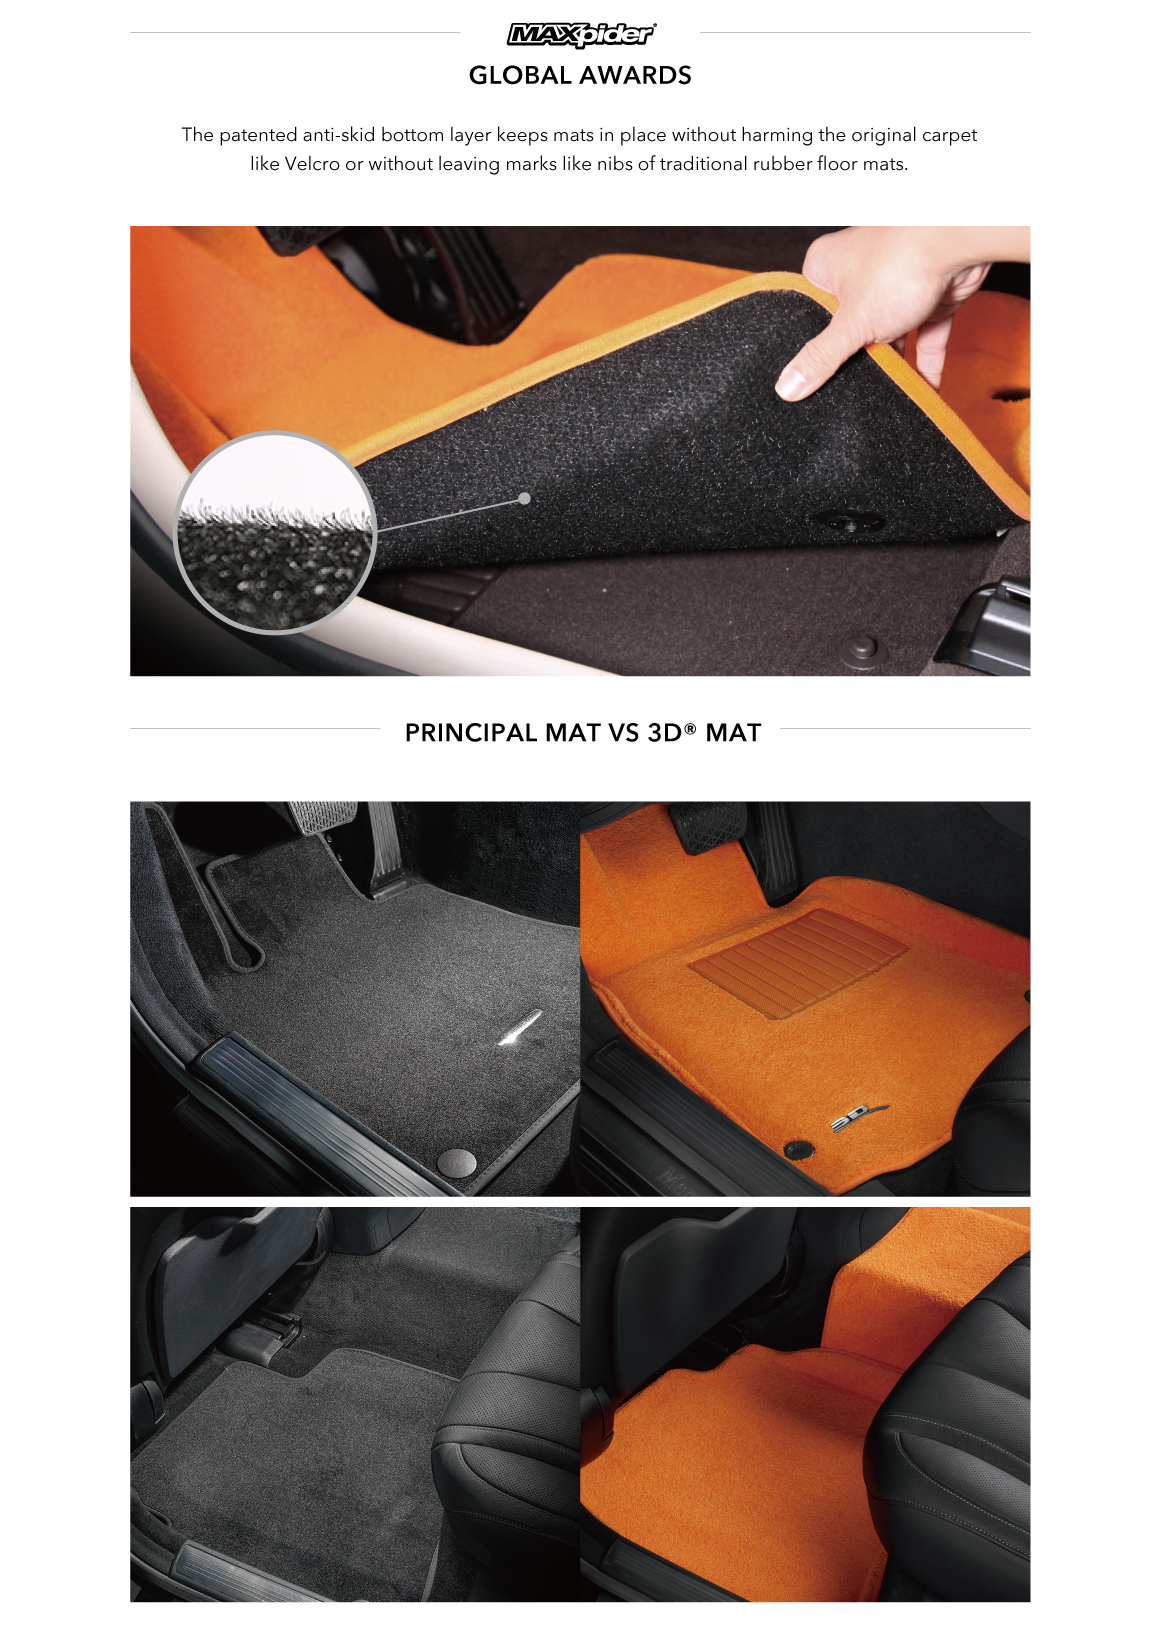 Suzuki Celerio Award Winning Car Floor Mats